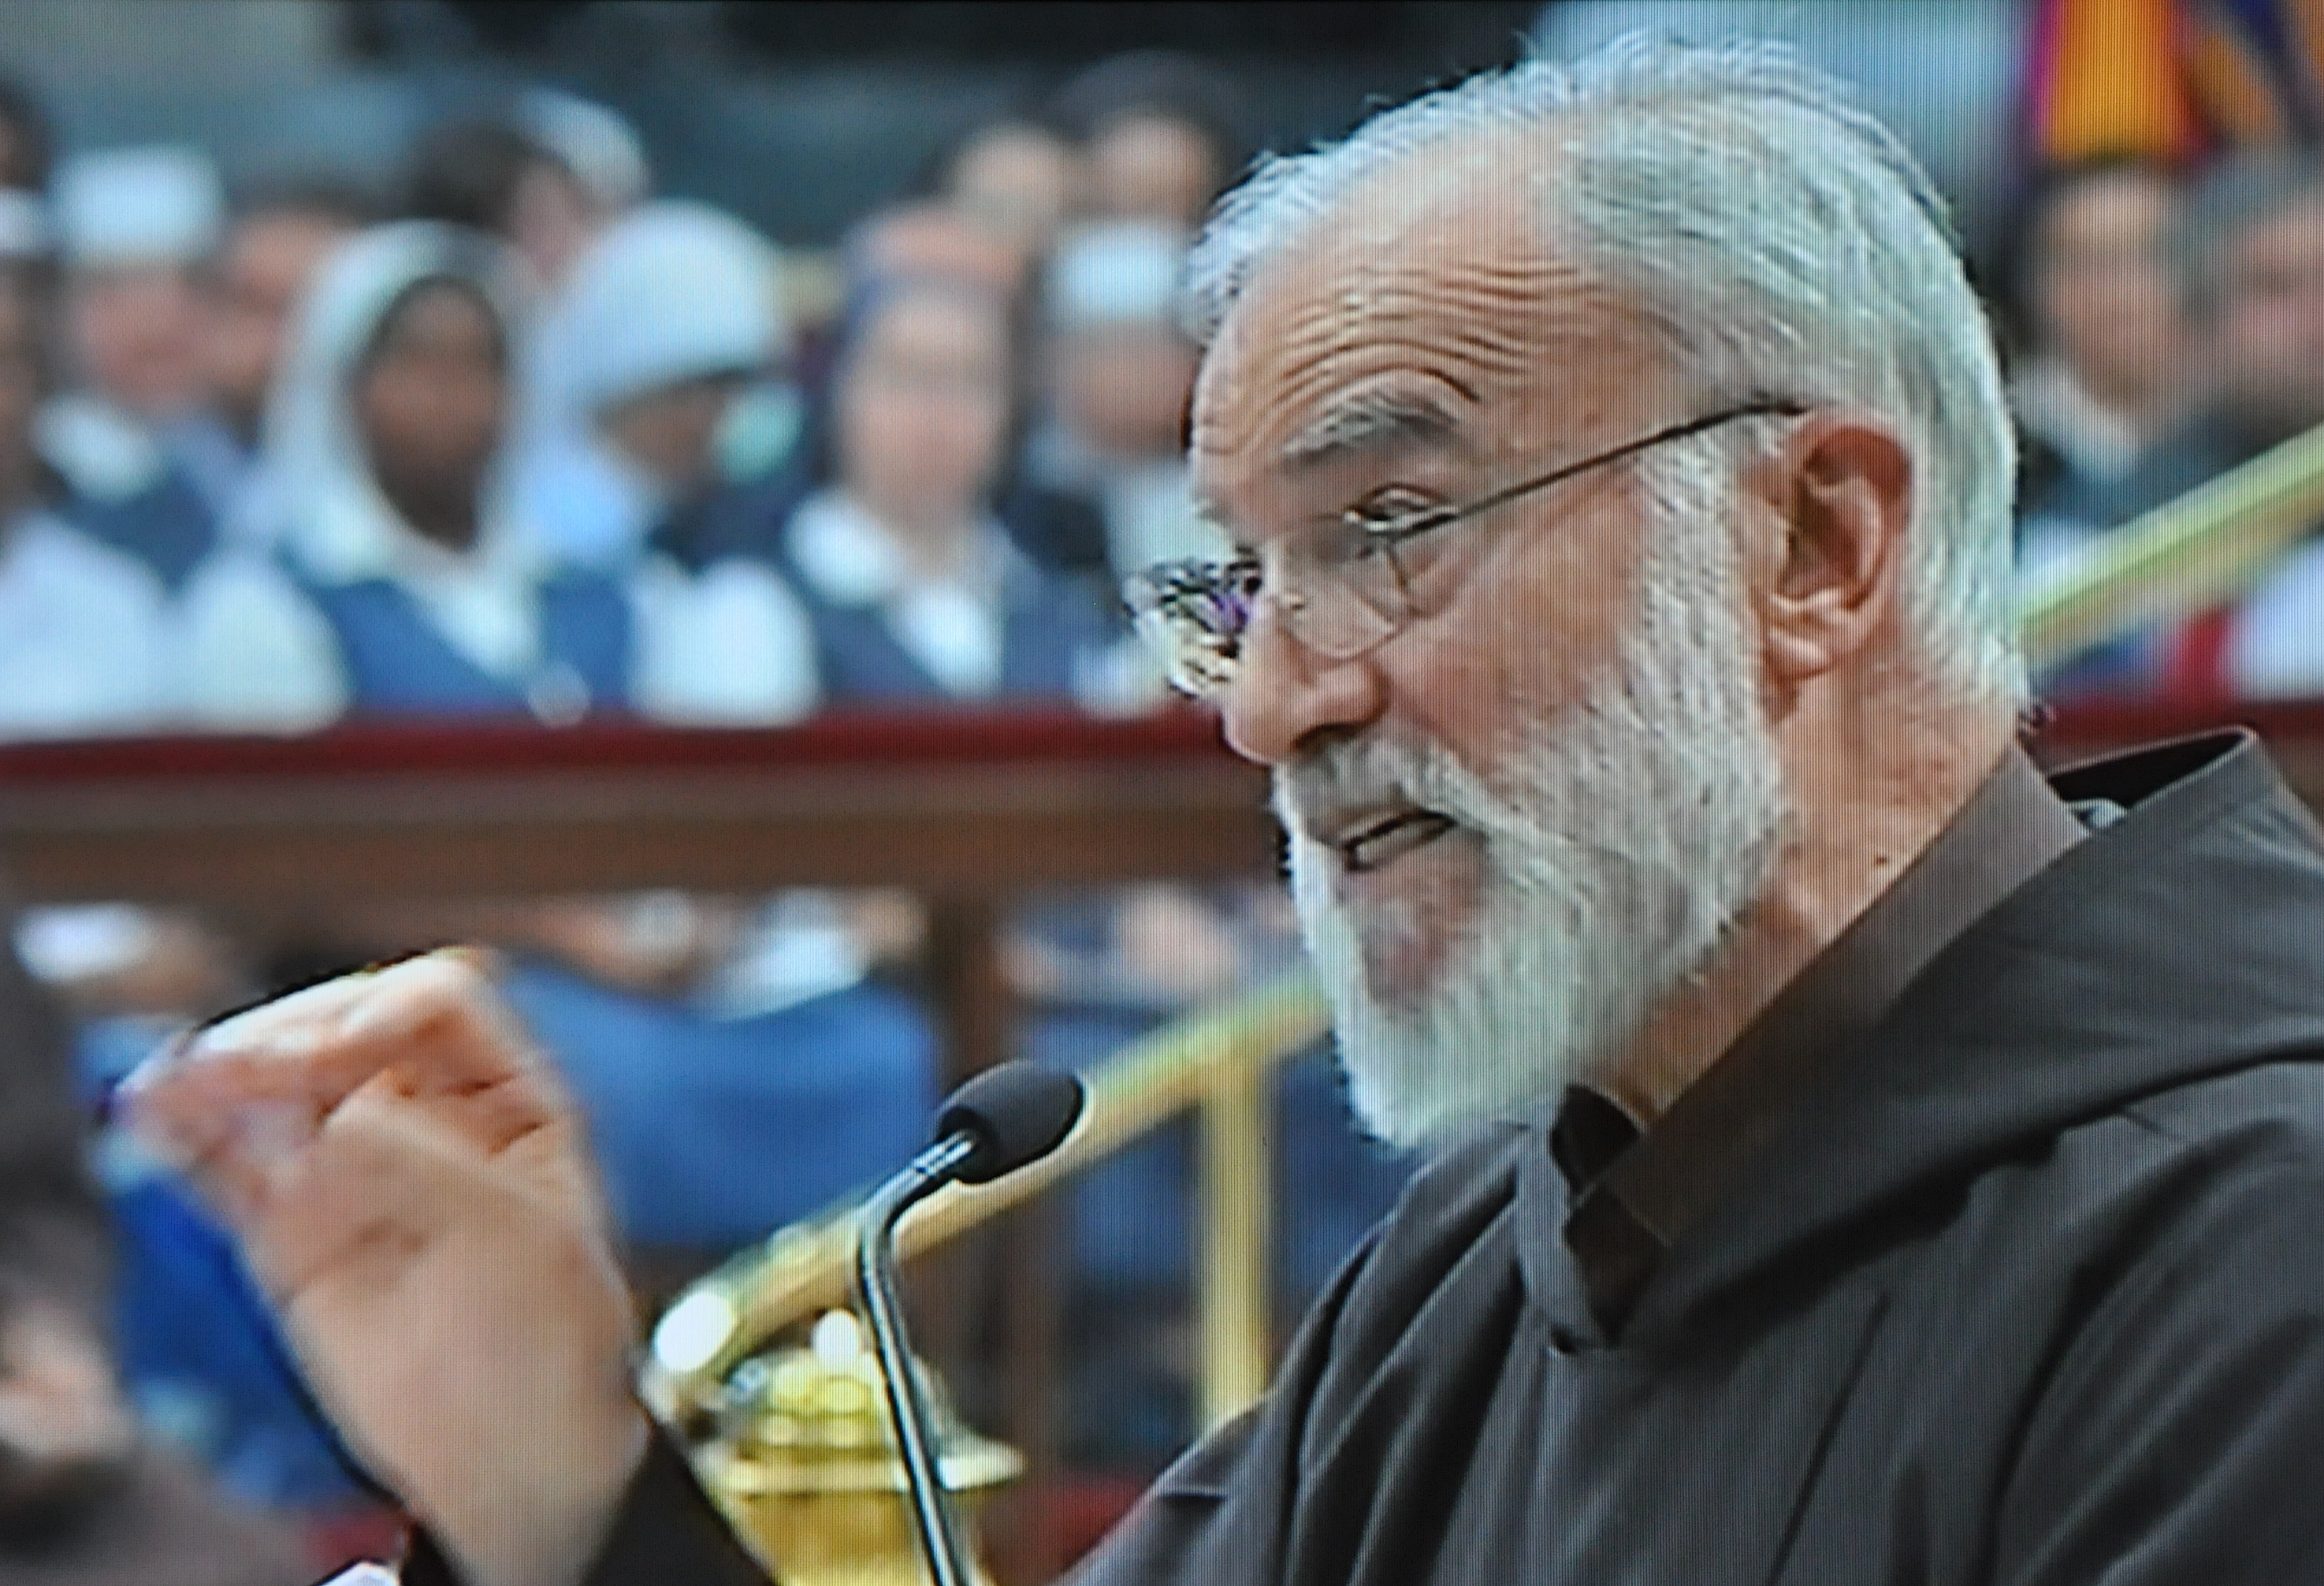 Raniero Cantalamessa in the predication of the Day to pray for the care of creation